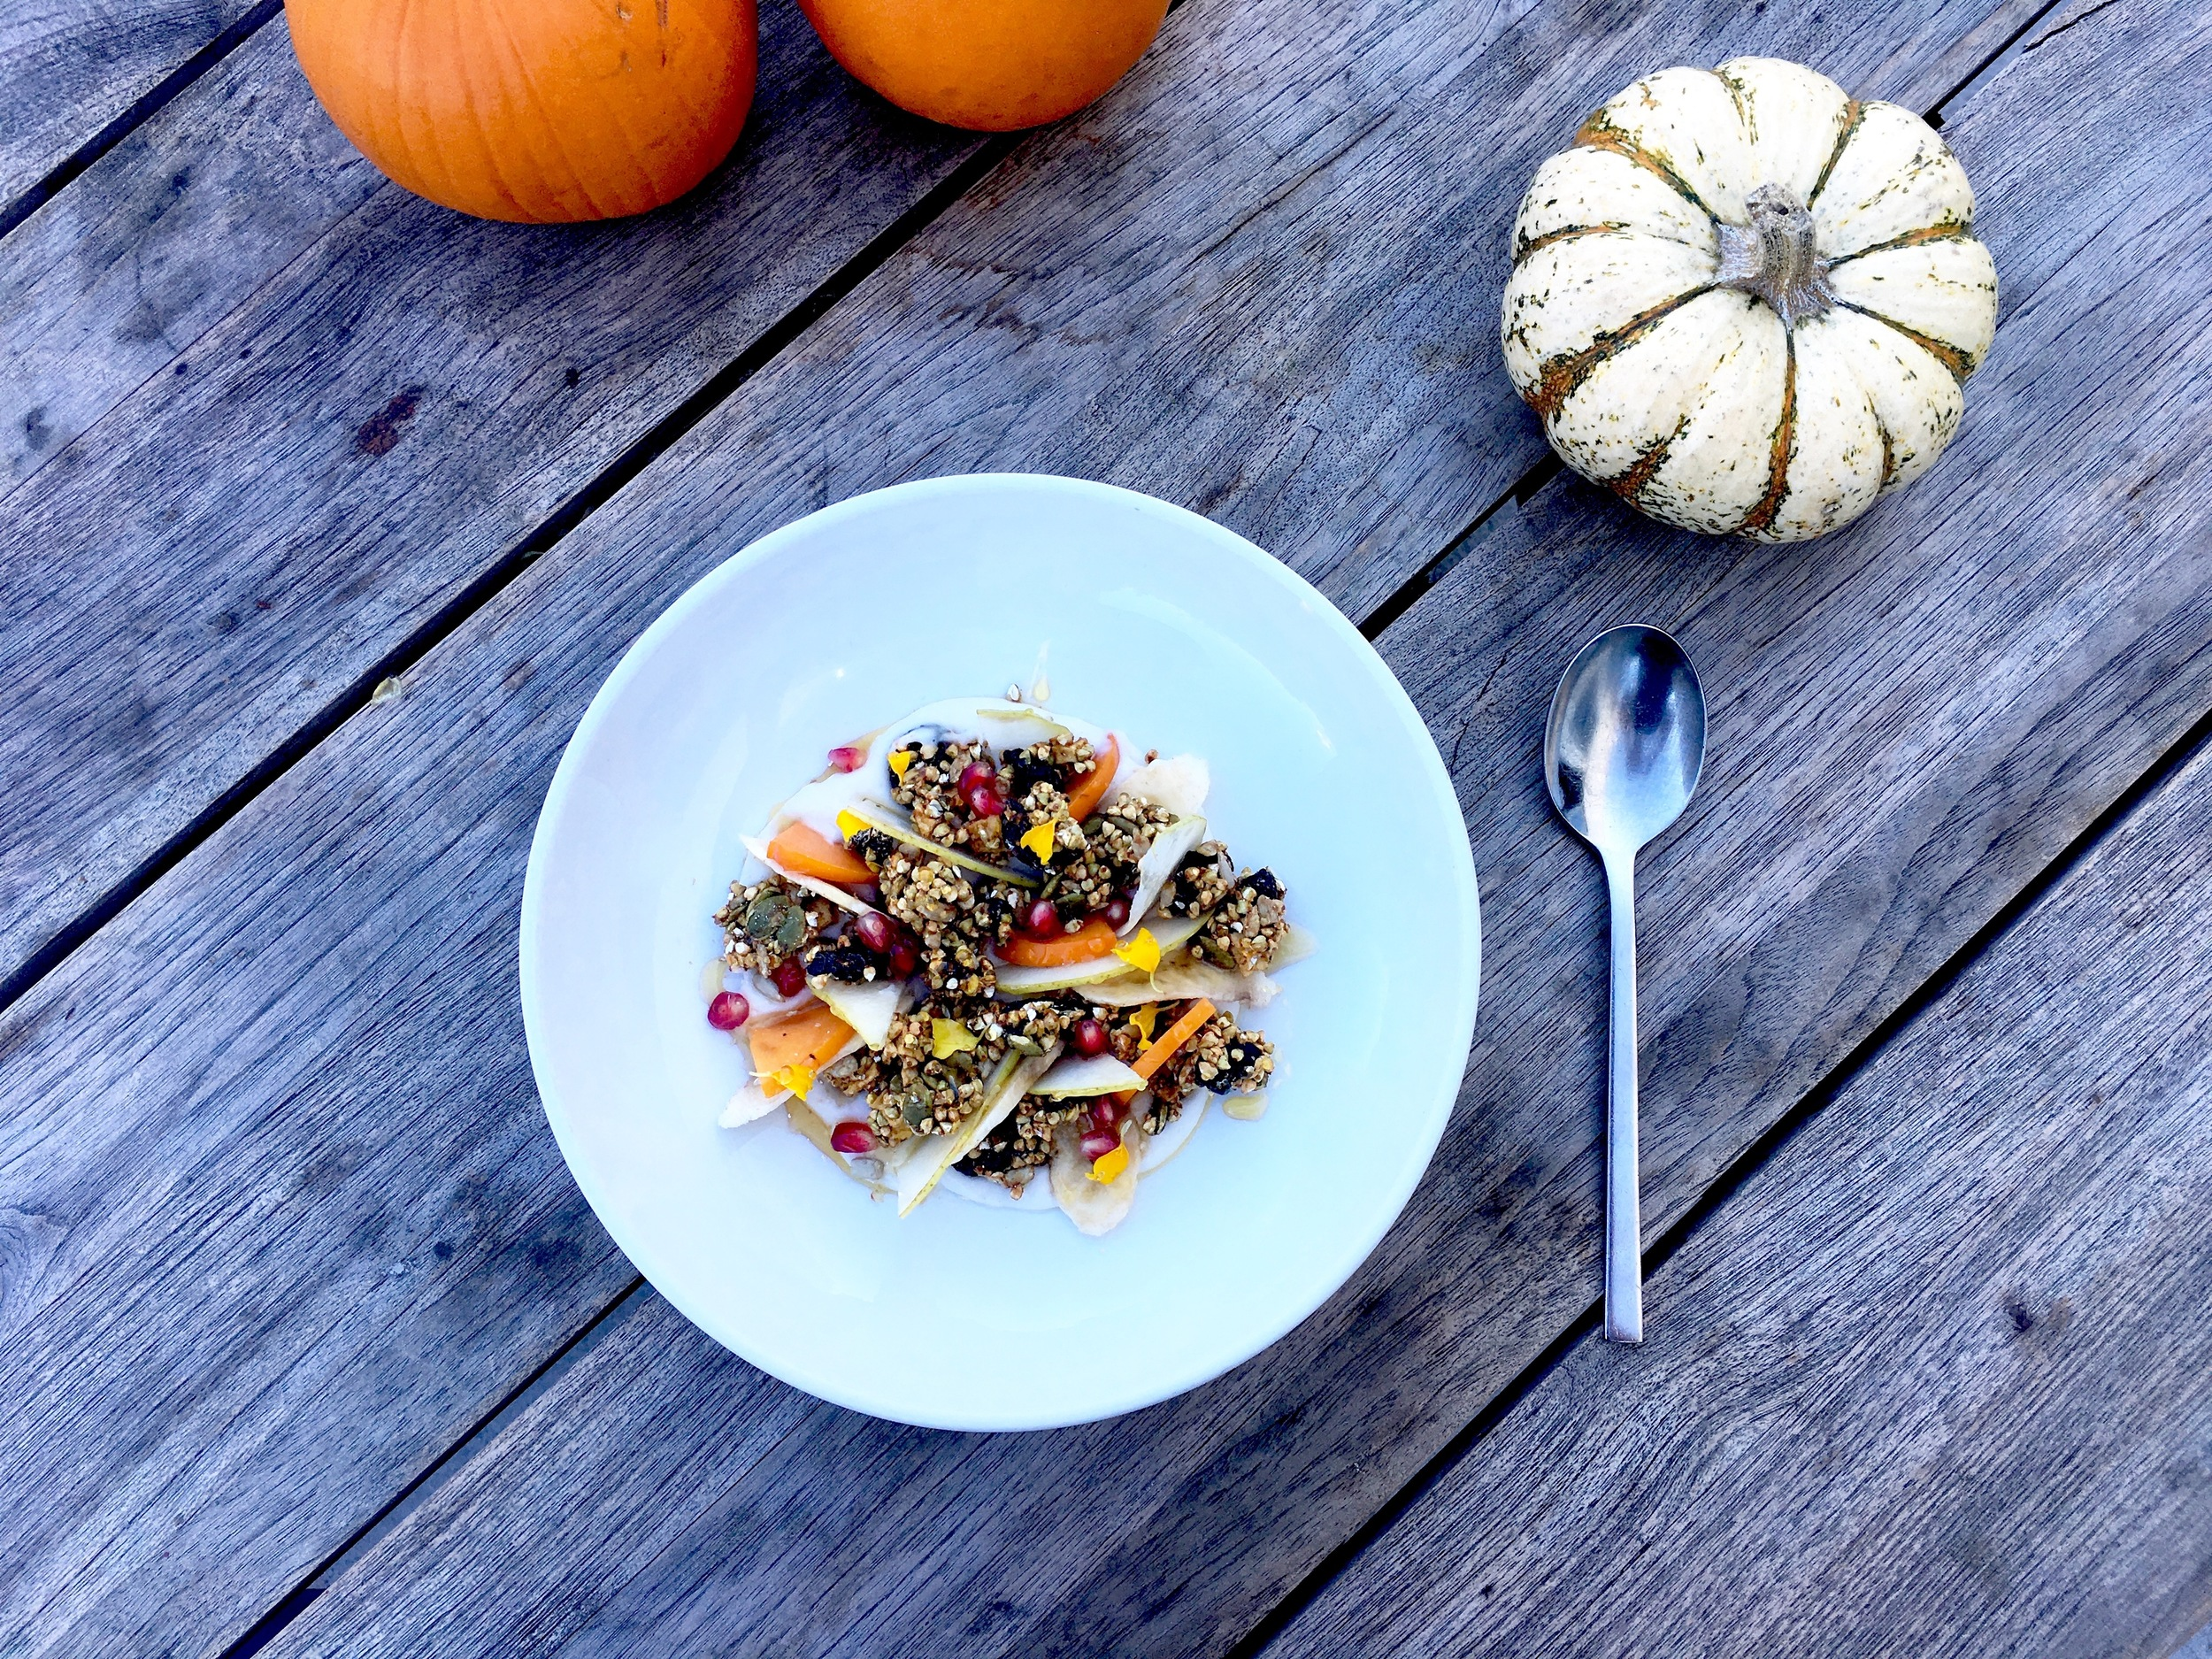 COYO (coconut yogurt) /Sprouted buckwheat granola / Persimmons / Pomegranate / Pears